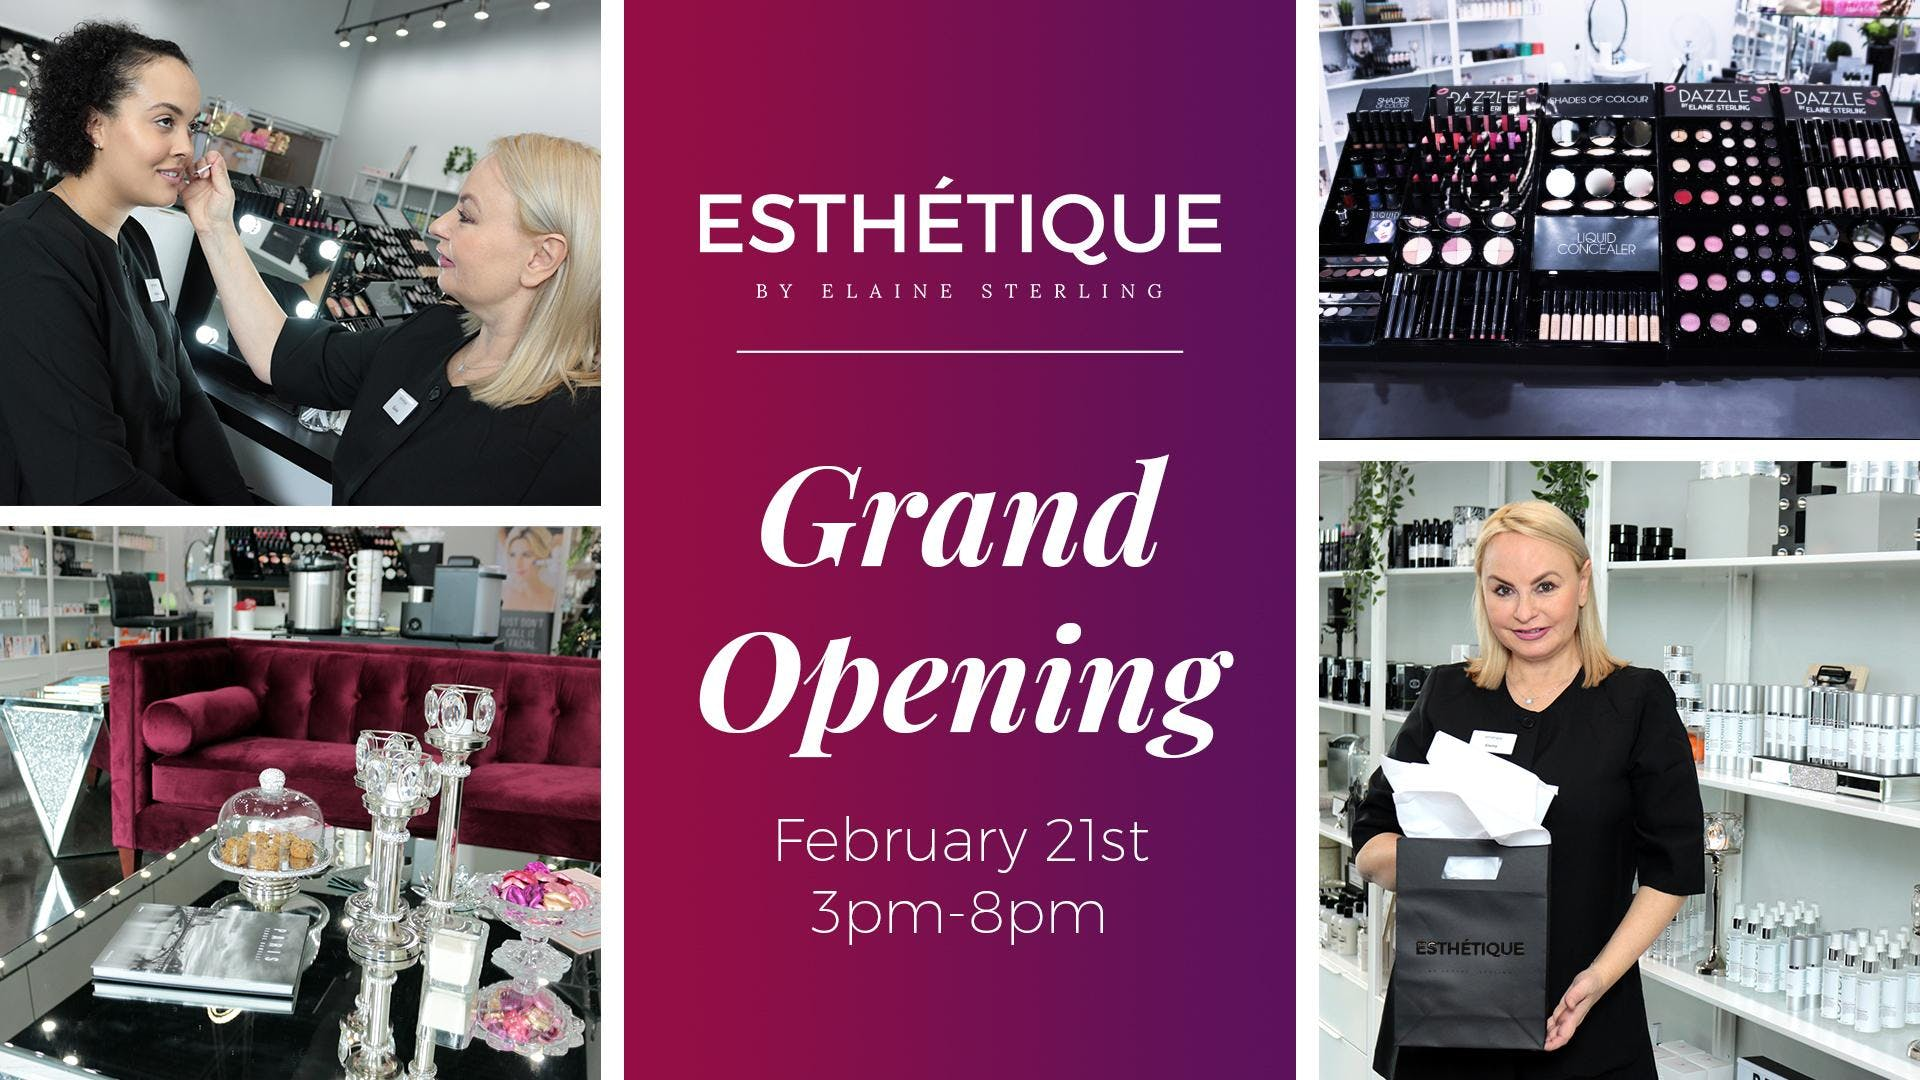 Esthétique by Elaine Sterling Grand Opening